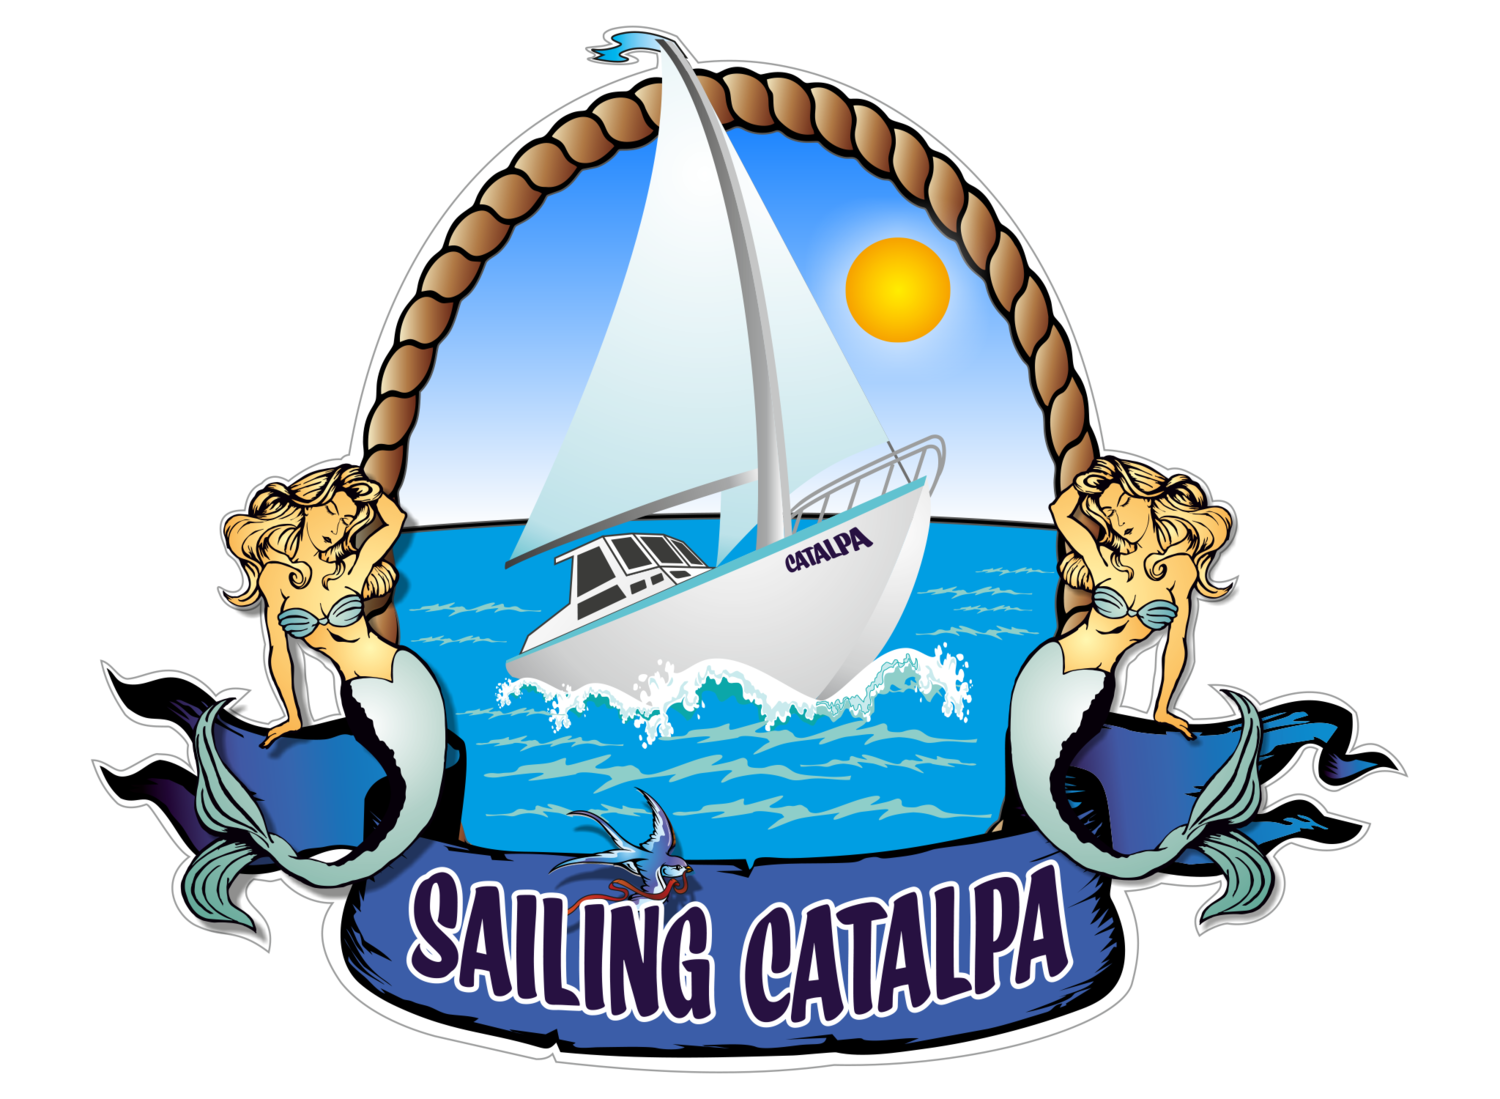 Sail clipart sailing sport. Home catalpa clip stock